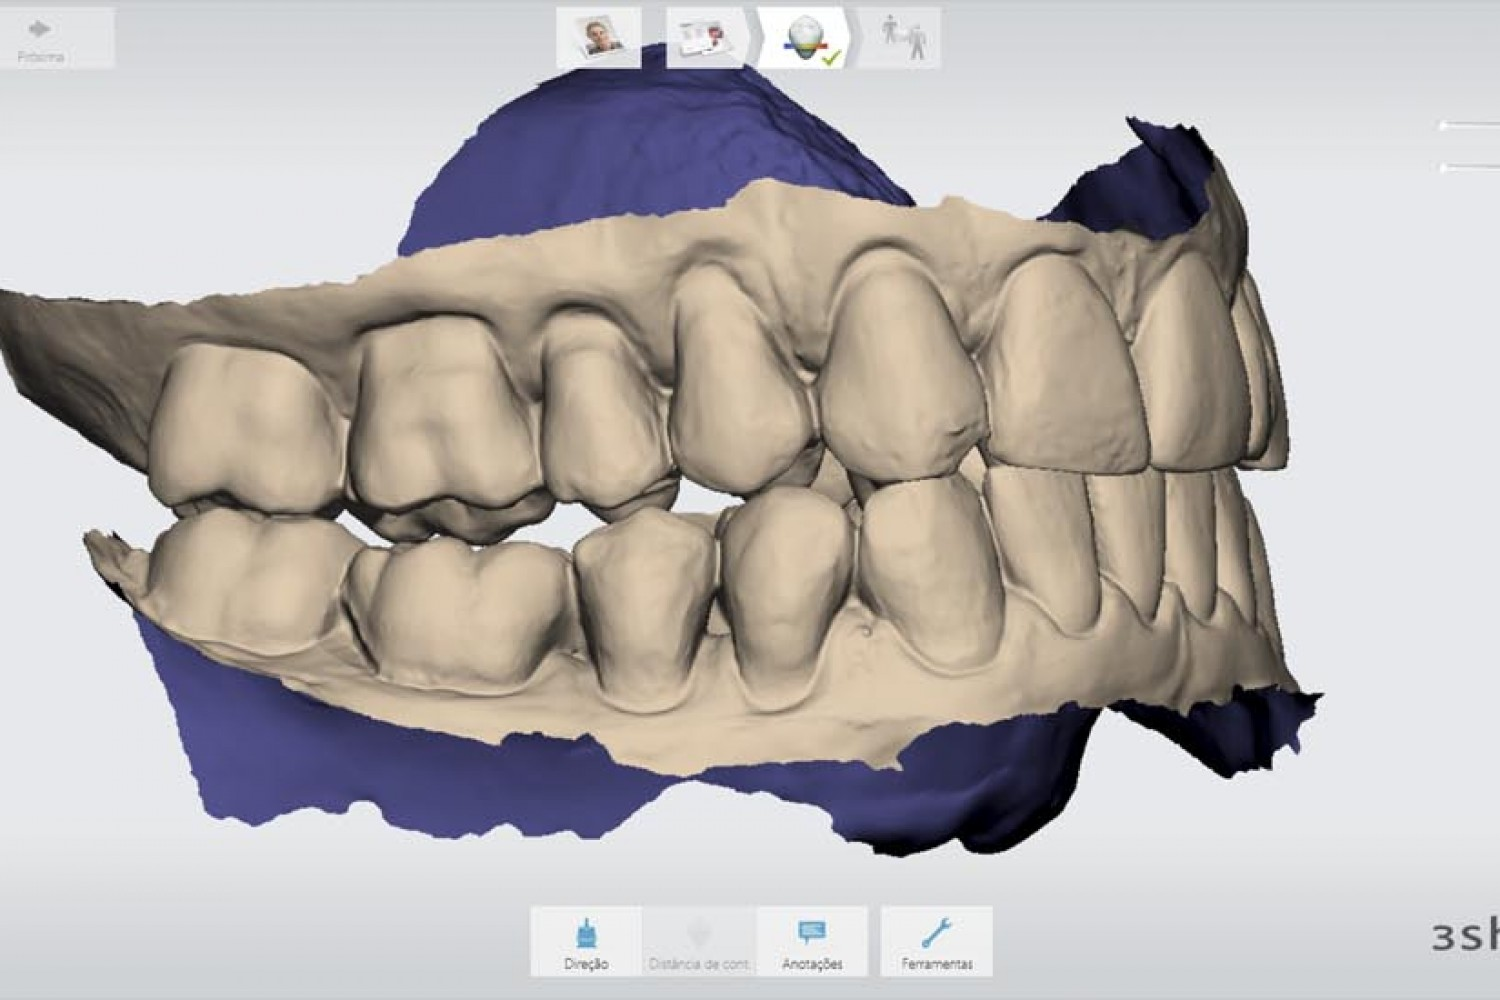 Ceramic restorations: Clinical-laboratorial communication improved 